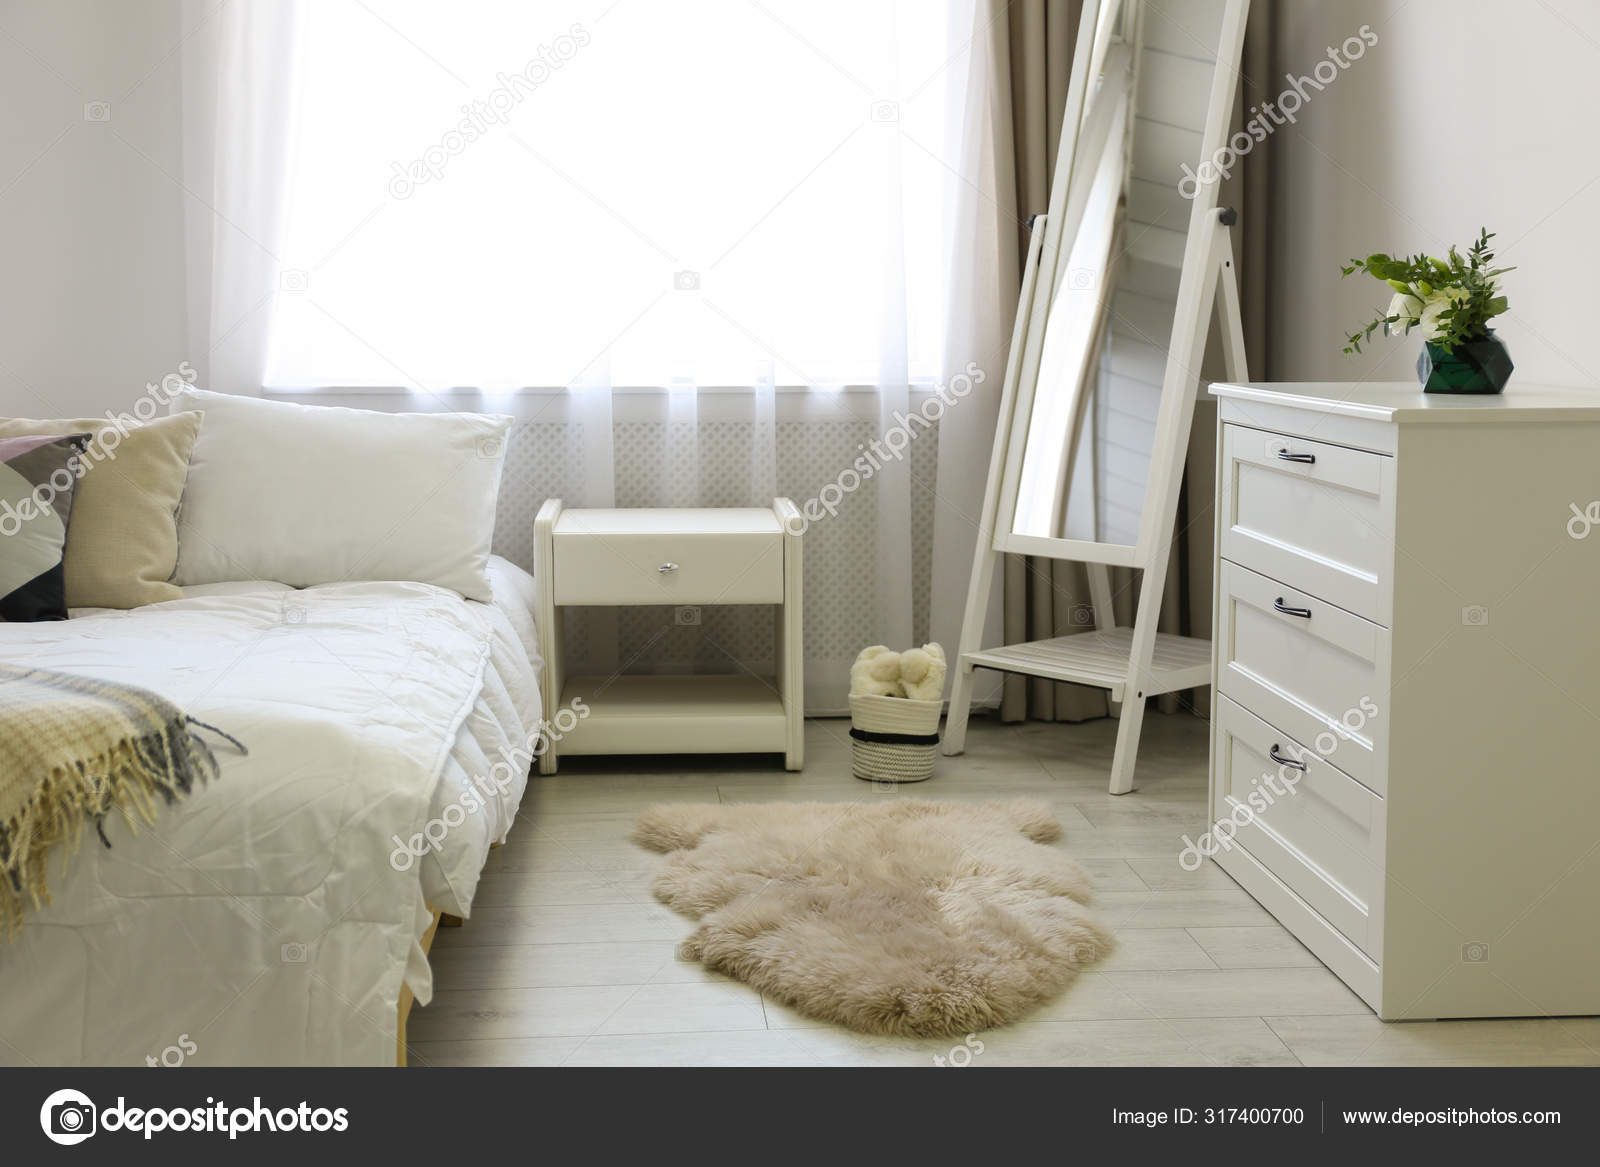 Bedroom Interior With Modern Chest Of Drawers And Mirror Stock Photo C Liudmilachernetska Gmail Com 317400700